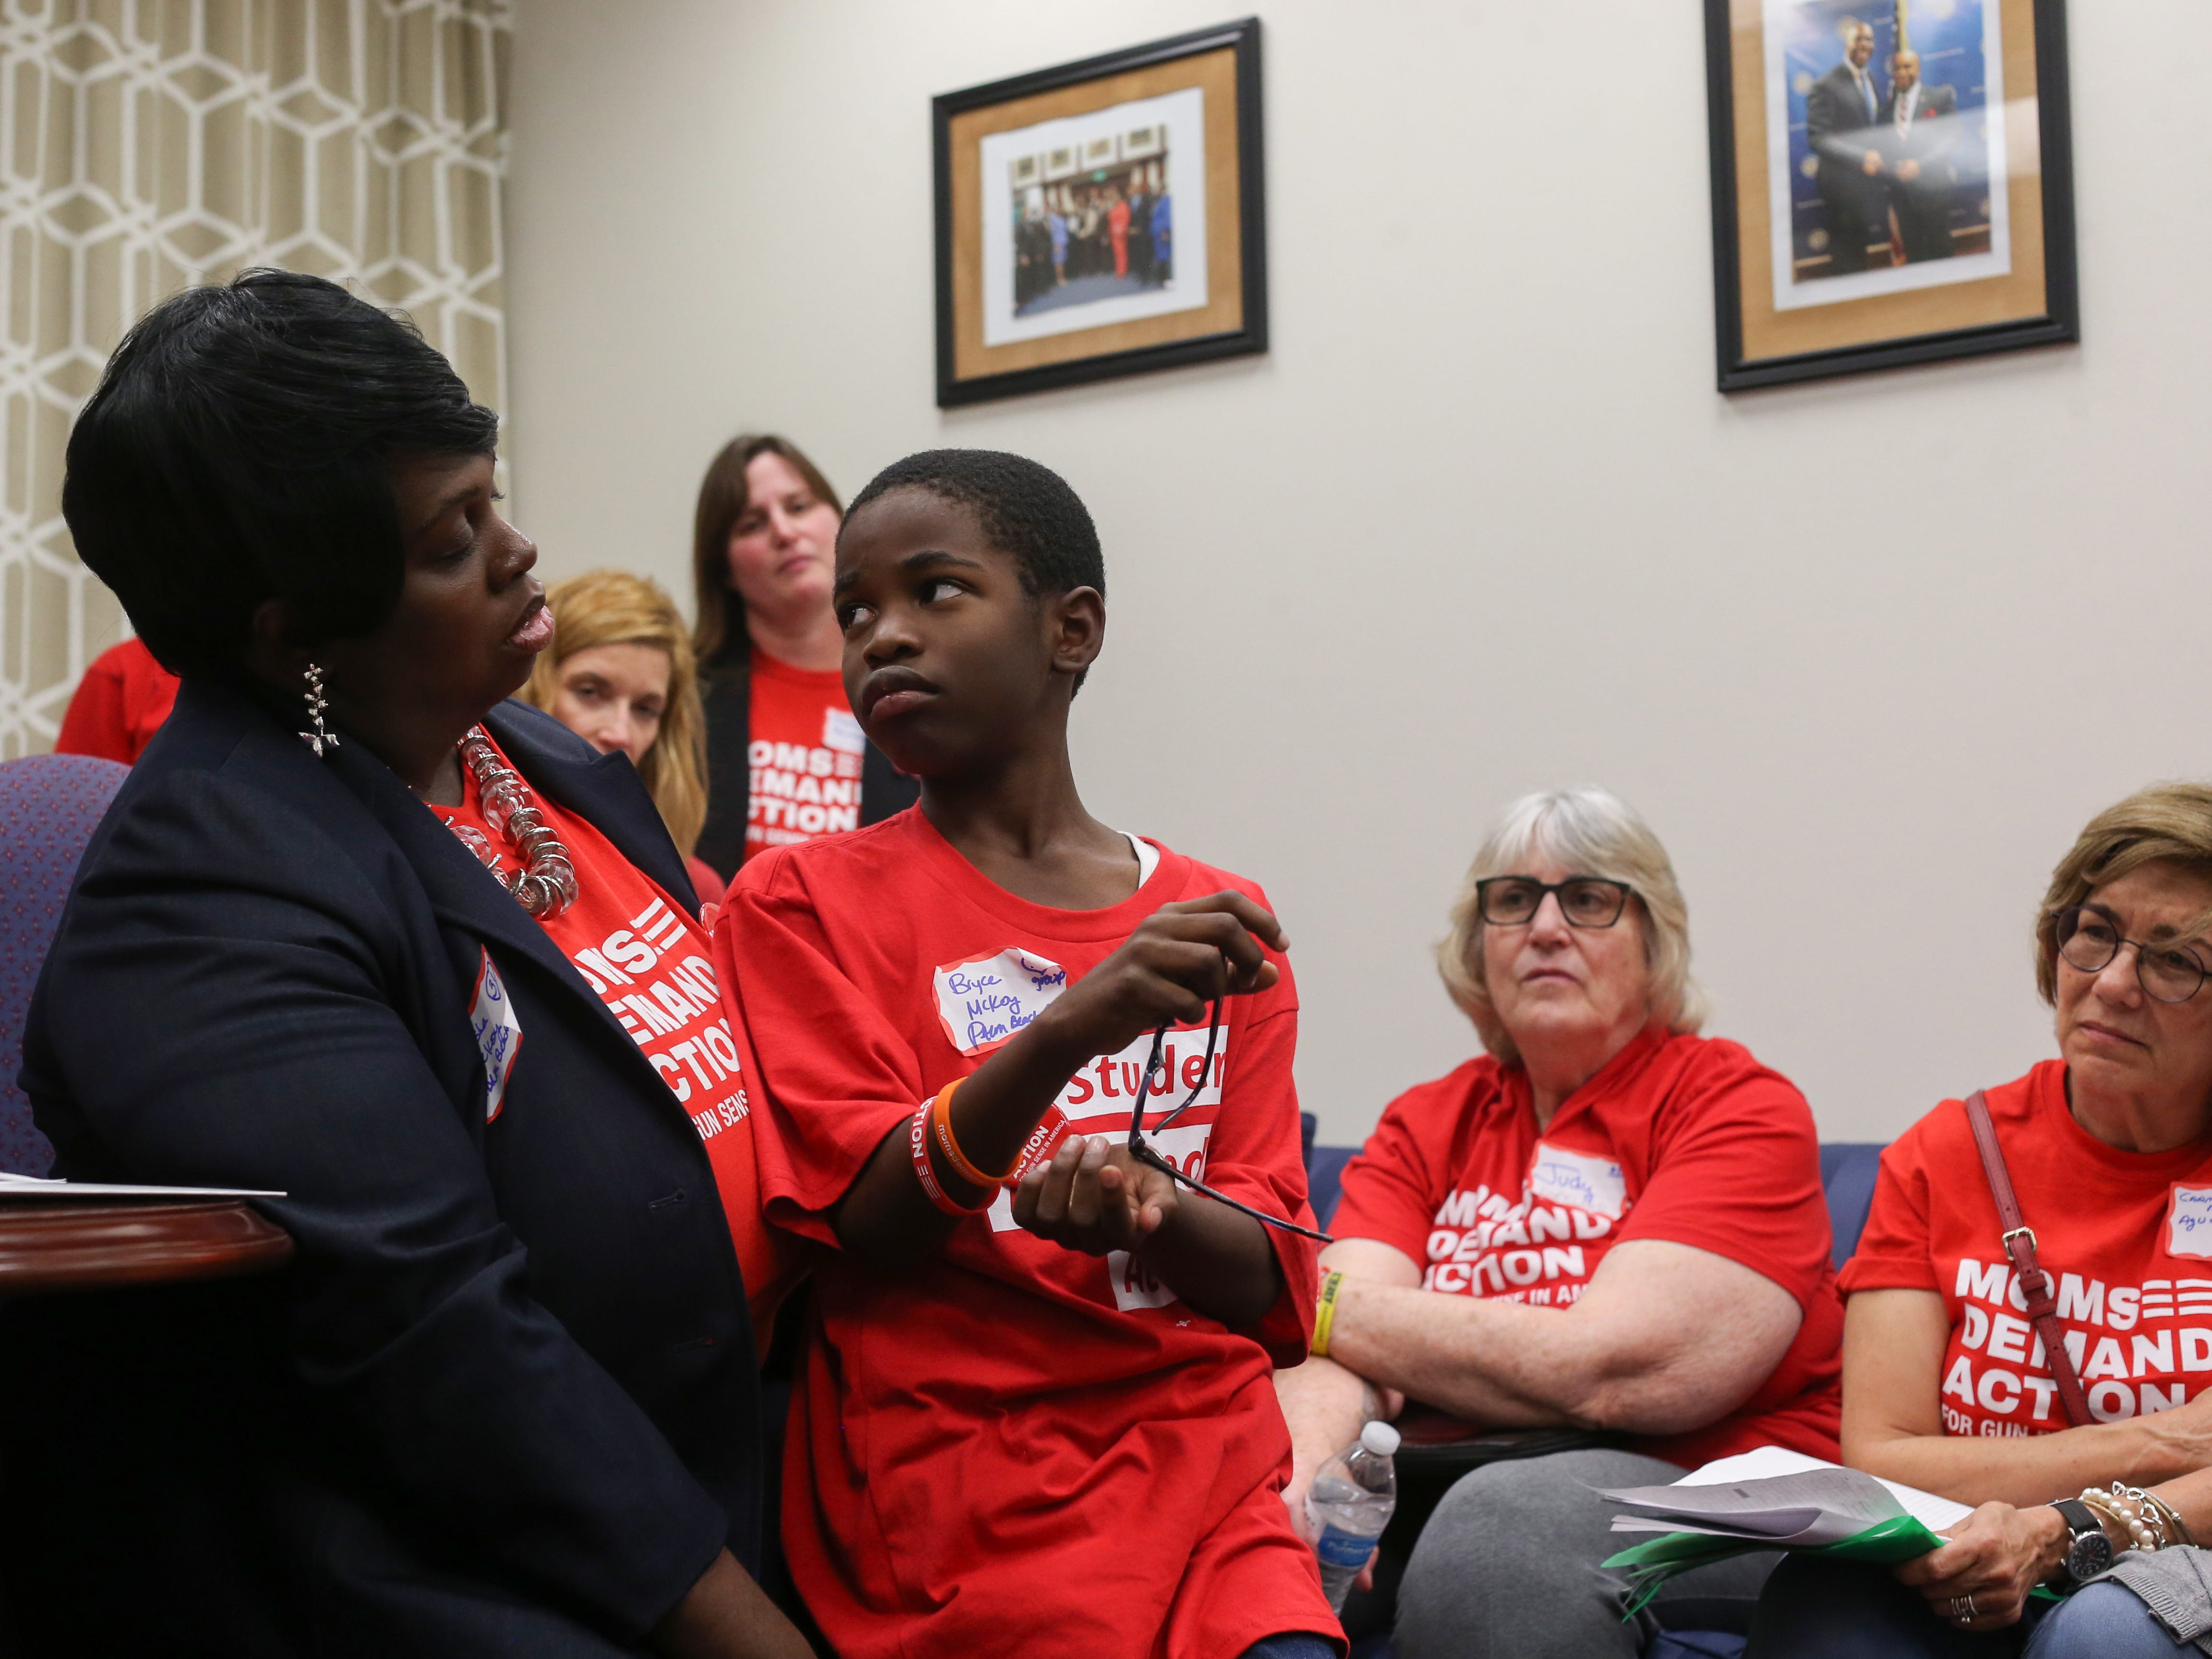 Bryce Mckoy, a 9-year-old second grader from Palm Beach County, looks at his mom, Teisha Mckoy, as she encourages him to share the fears he has about going to school after the Marjory Stoneman Douglas shooting with Sen. Bobby Powell in Powell's office Wednesday, Feb. 6, 2019. Teisha Mckoy joined Moms Demand Action after the shooting almost a year ago which brought her to the Capitol with her son and over 500 other members to lobby for stricter gun laws.